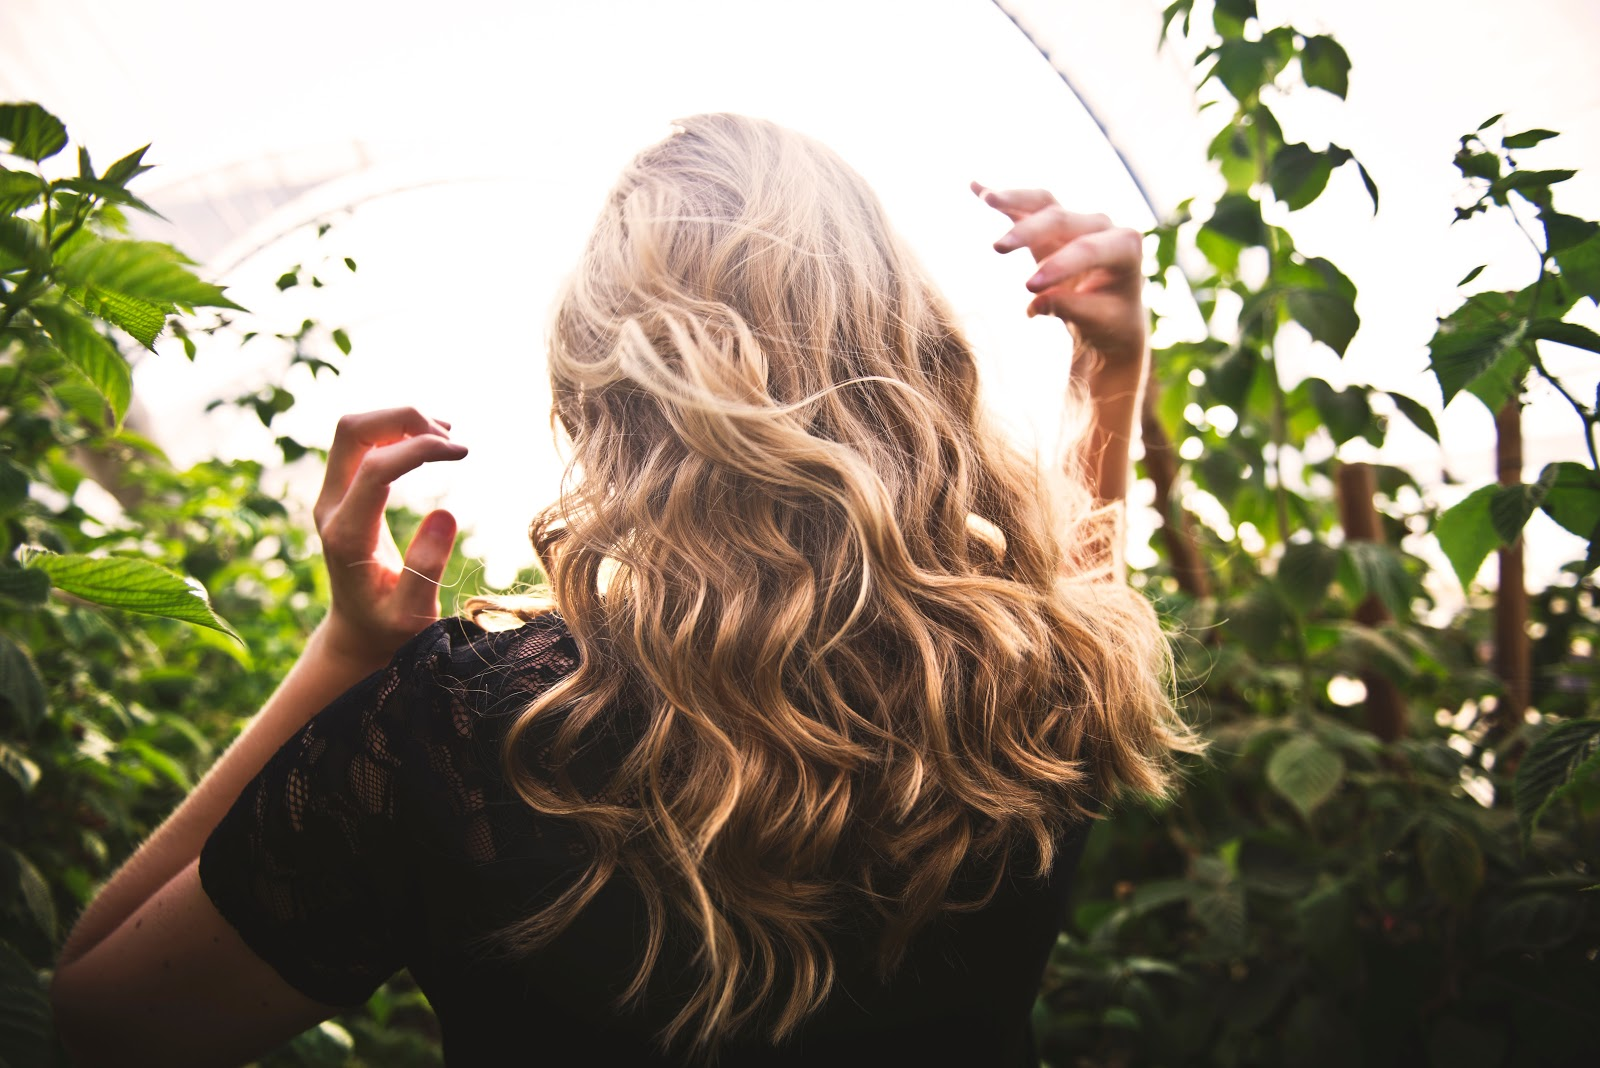 Best drugstore conditioner for curly hair